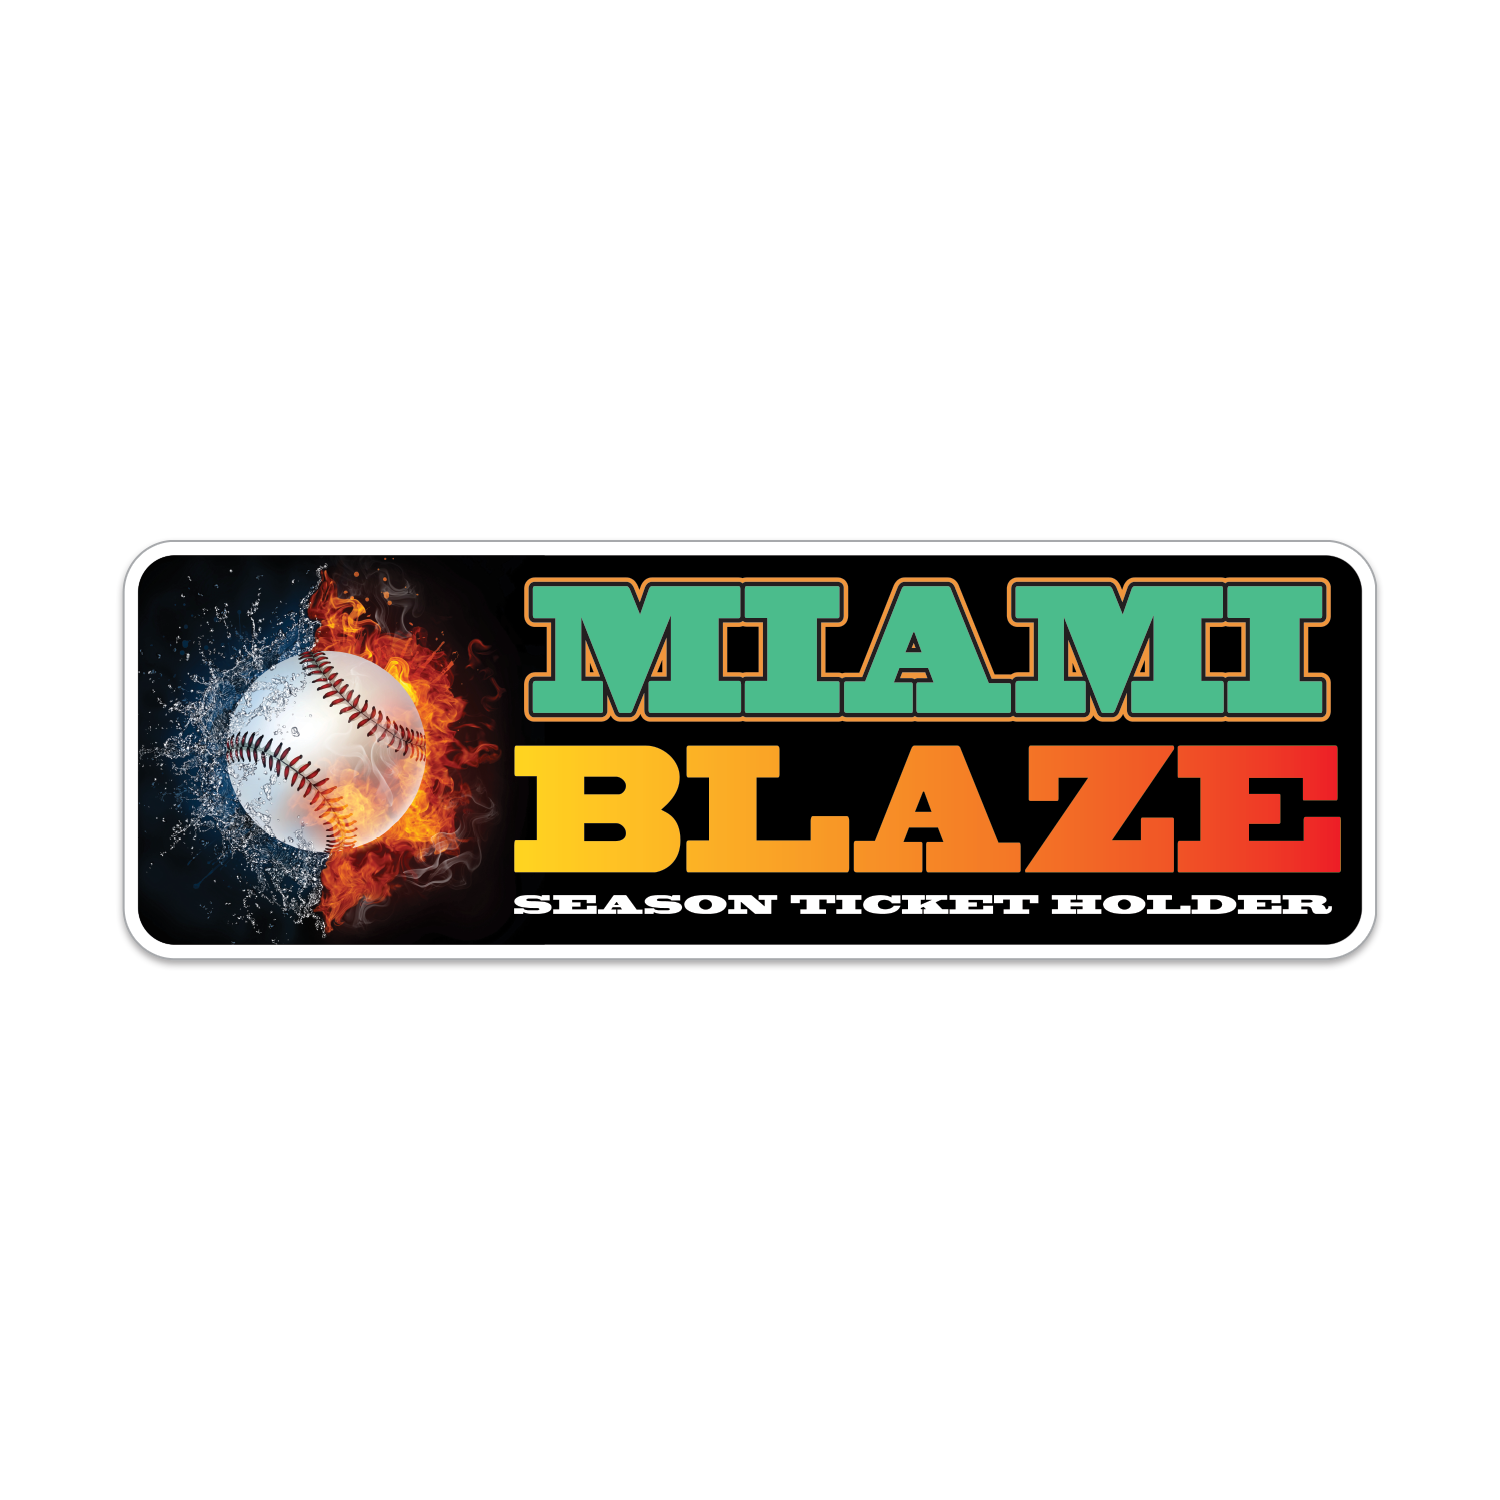 https://www.sswprinting.com/images/products_gallery_images/190102_Miami-Blaze_hi-res.png